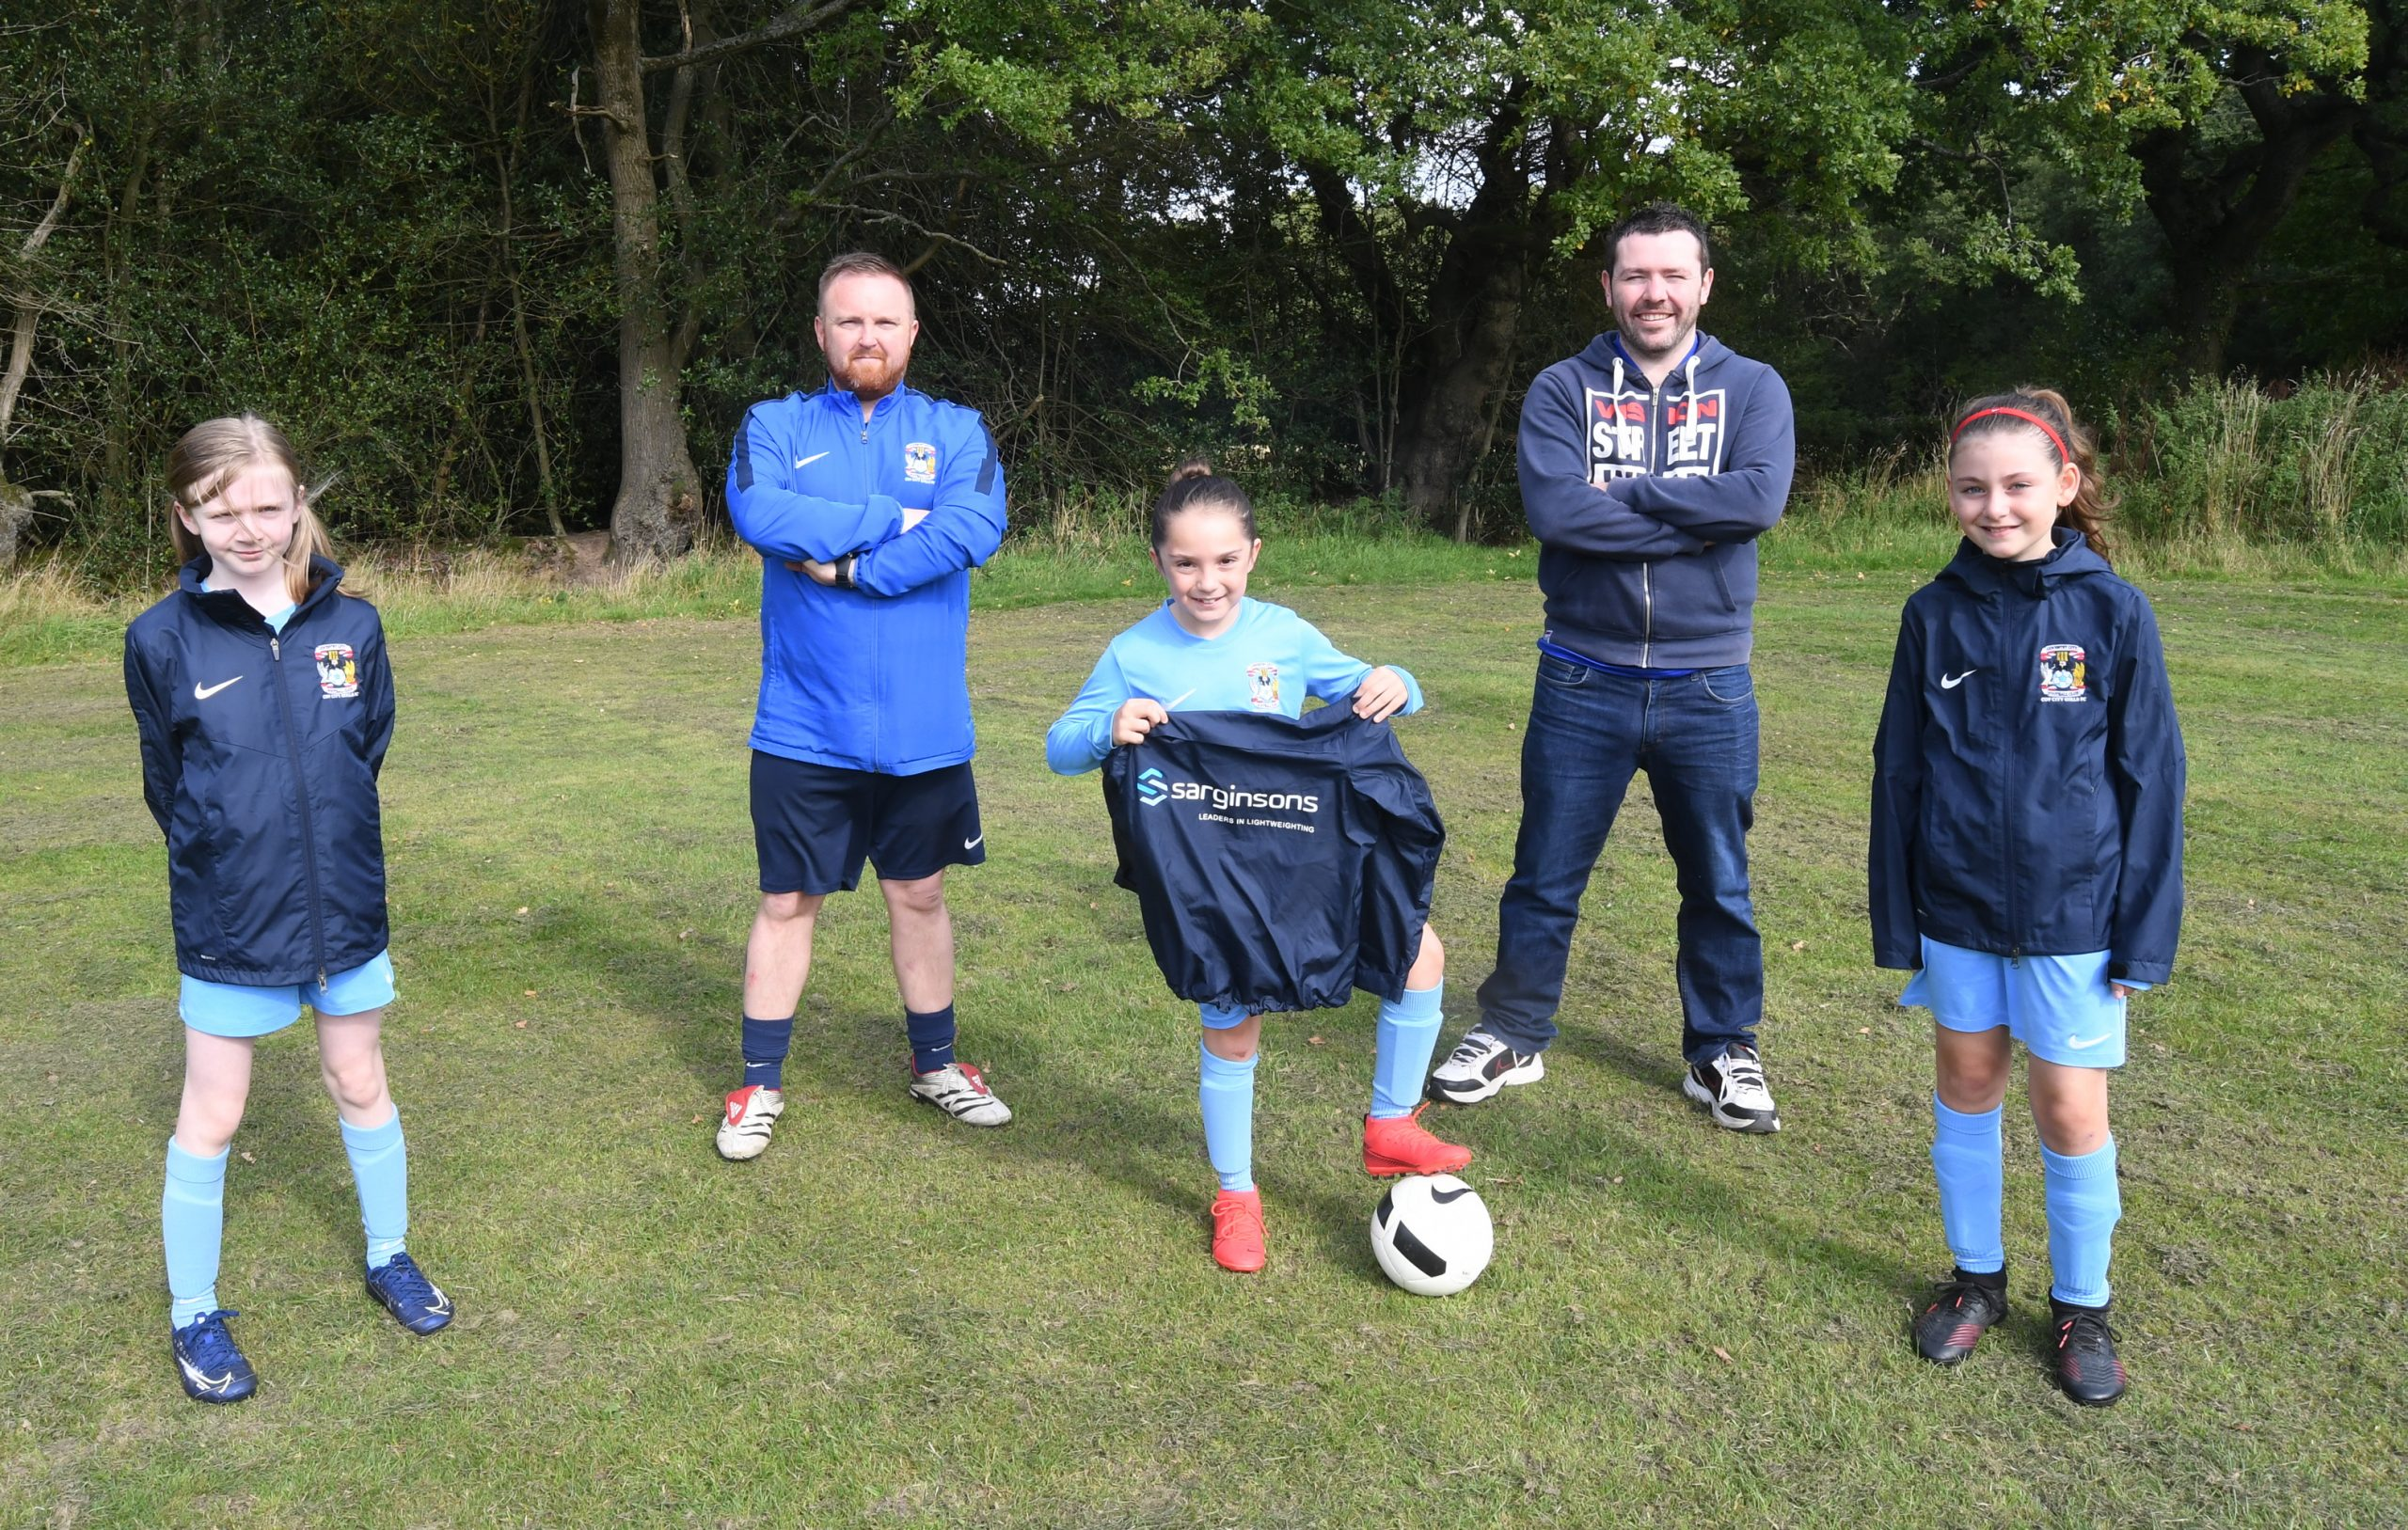 Sarginsons backs local football team!